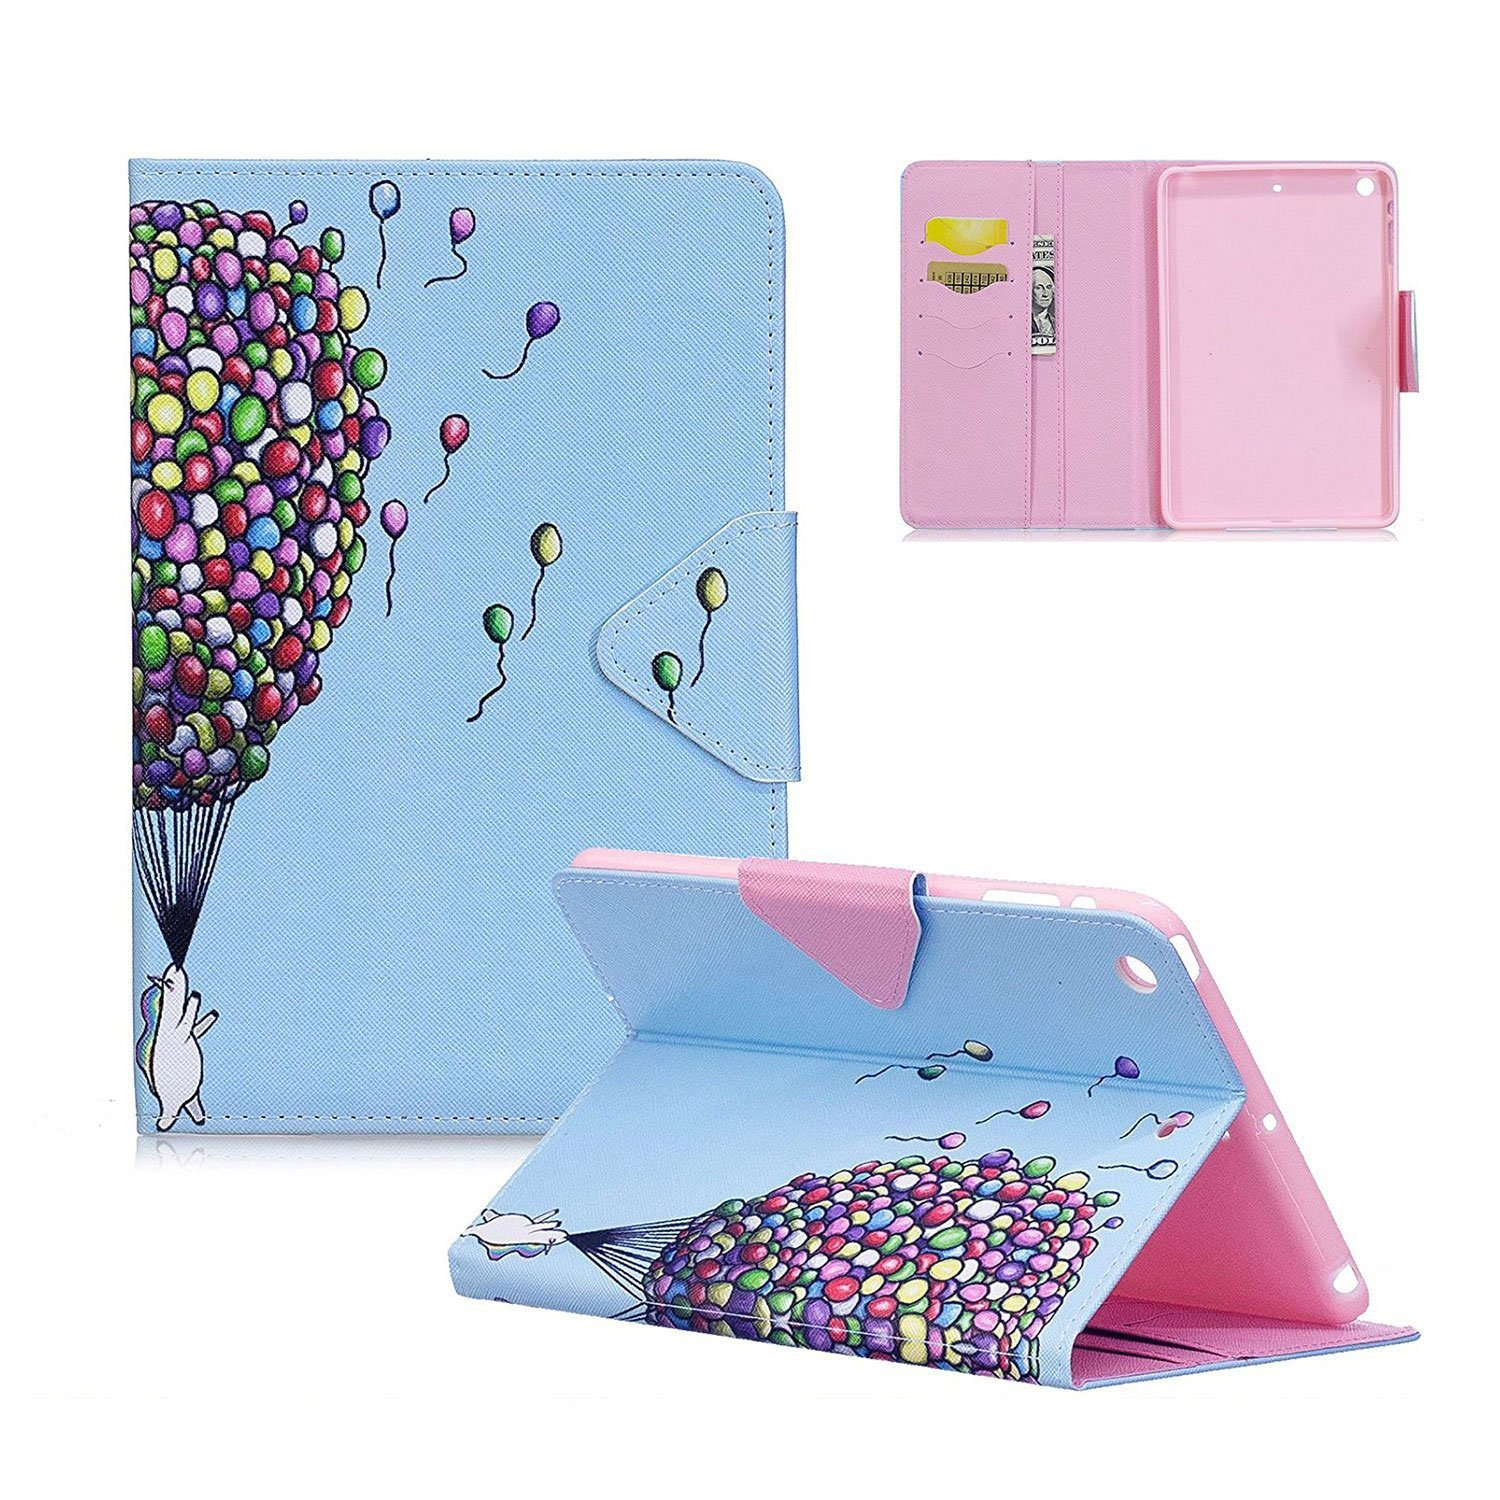 2nd and 3rd Generation A Bunch of Cats Premium Synthetic Leather Stand Smart Cover with Card Slots//Cash Holder Corner Protection iPad Mini 2//3 Case Protective Shell for Apple iPad Mini 1st